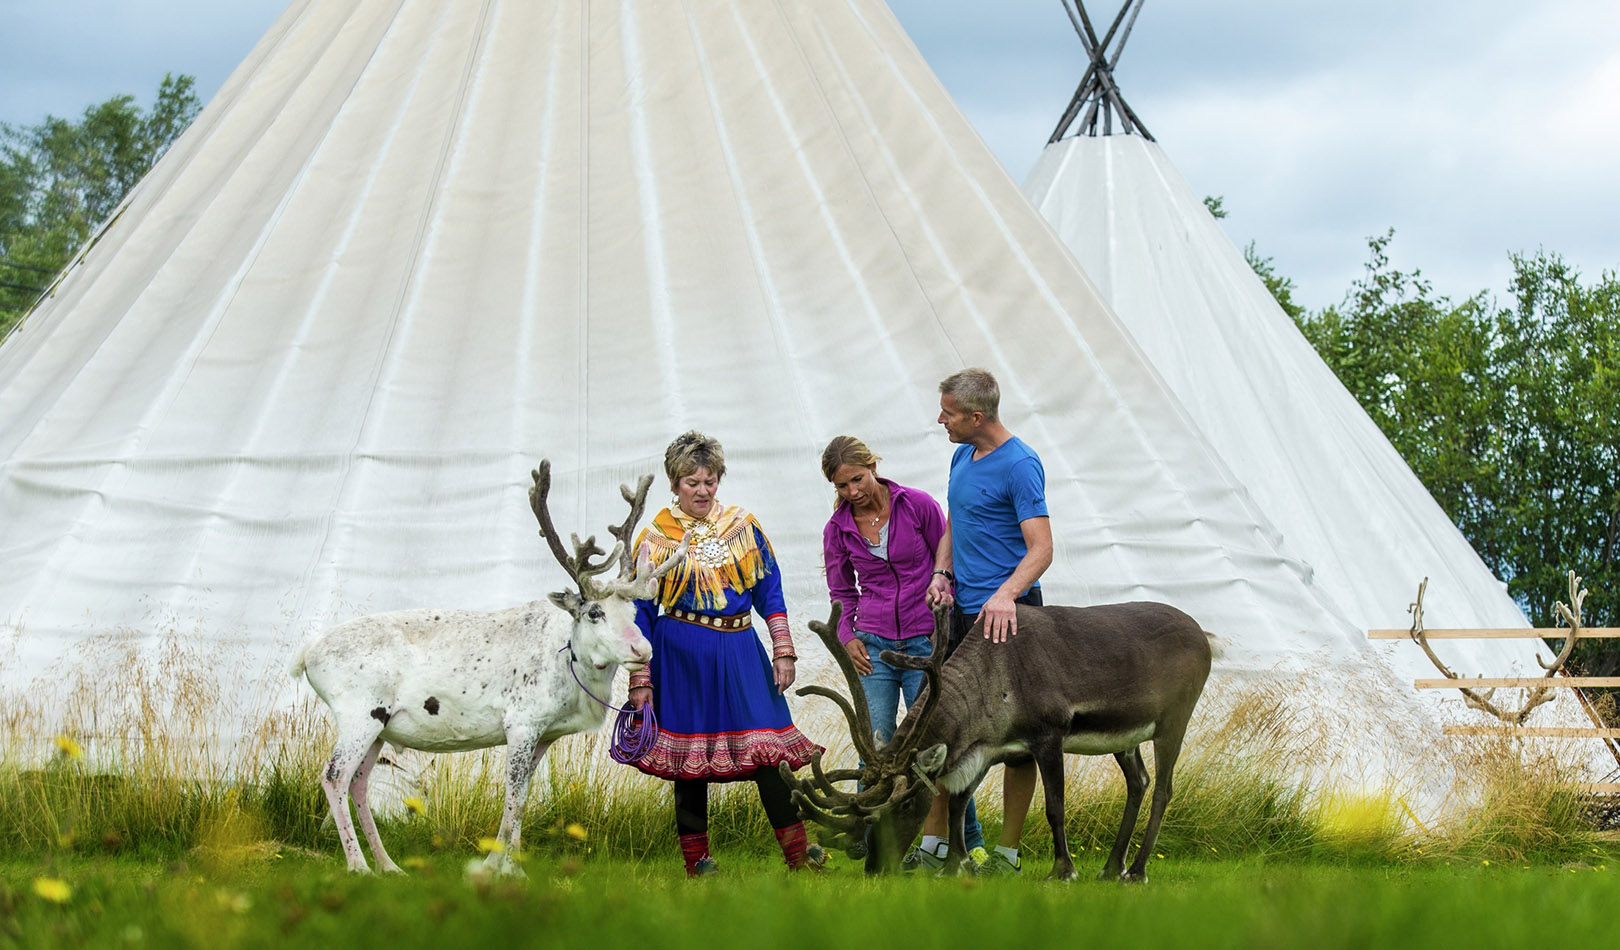 Tourists visiting sami people with reindeer and lavvos (tents) in Alta, Finnmark.